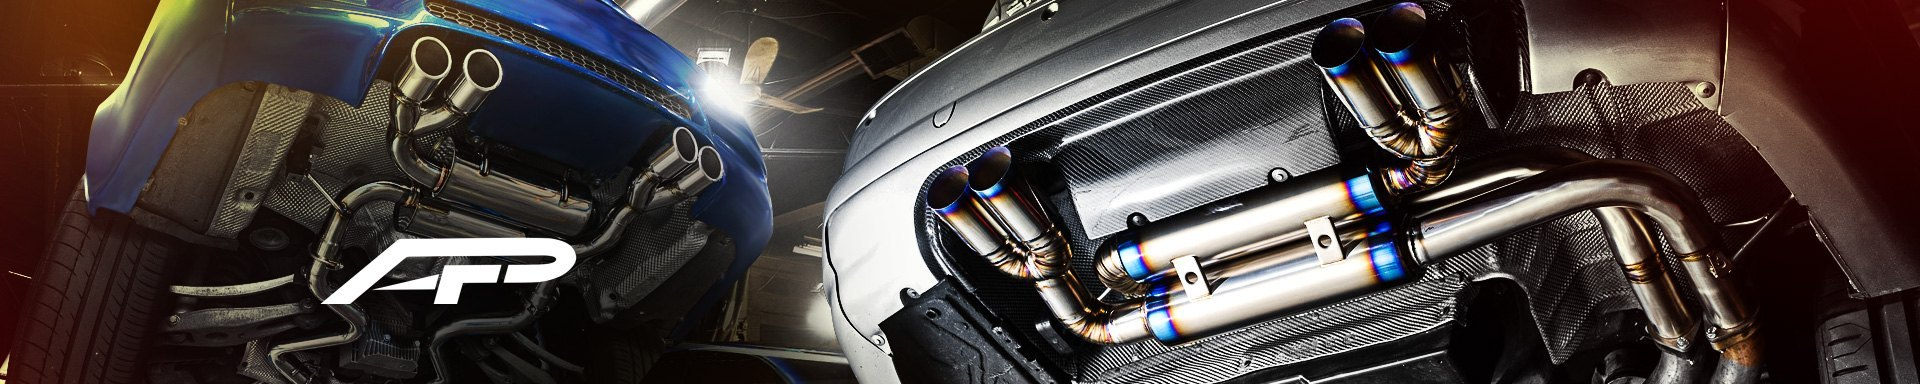 Agency Power Performance Exhaust Systems